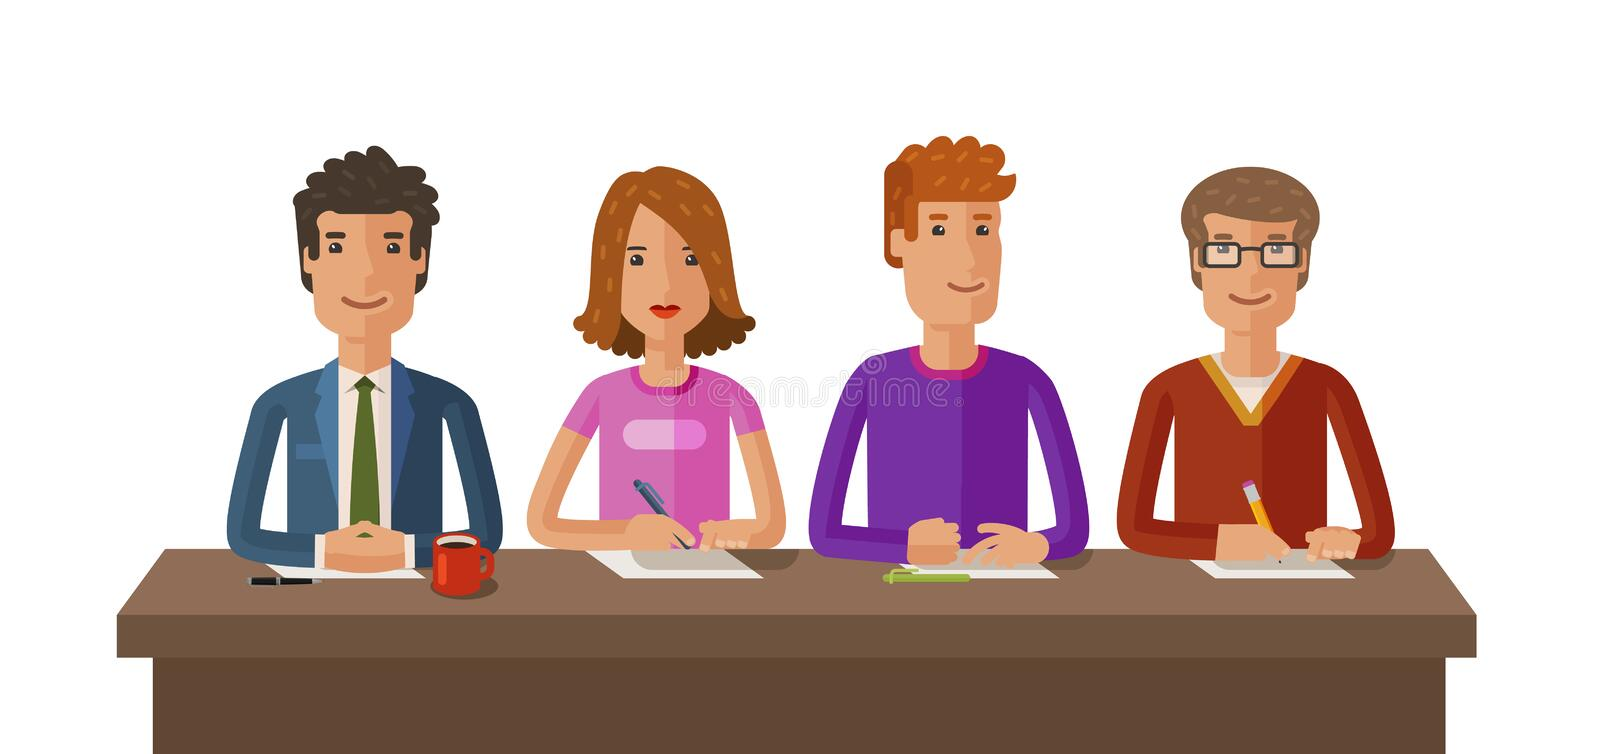 Group of judges or students. Exam, education, study concept. Vector flat illustration. On white background vector illustration